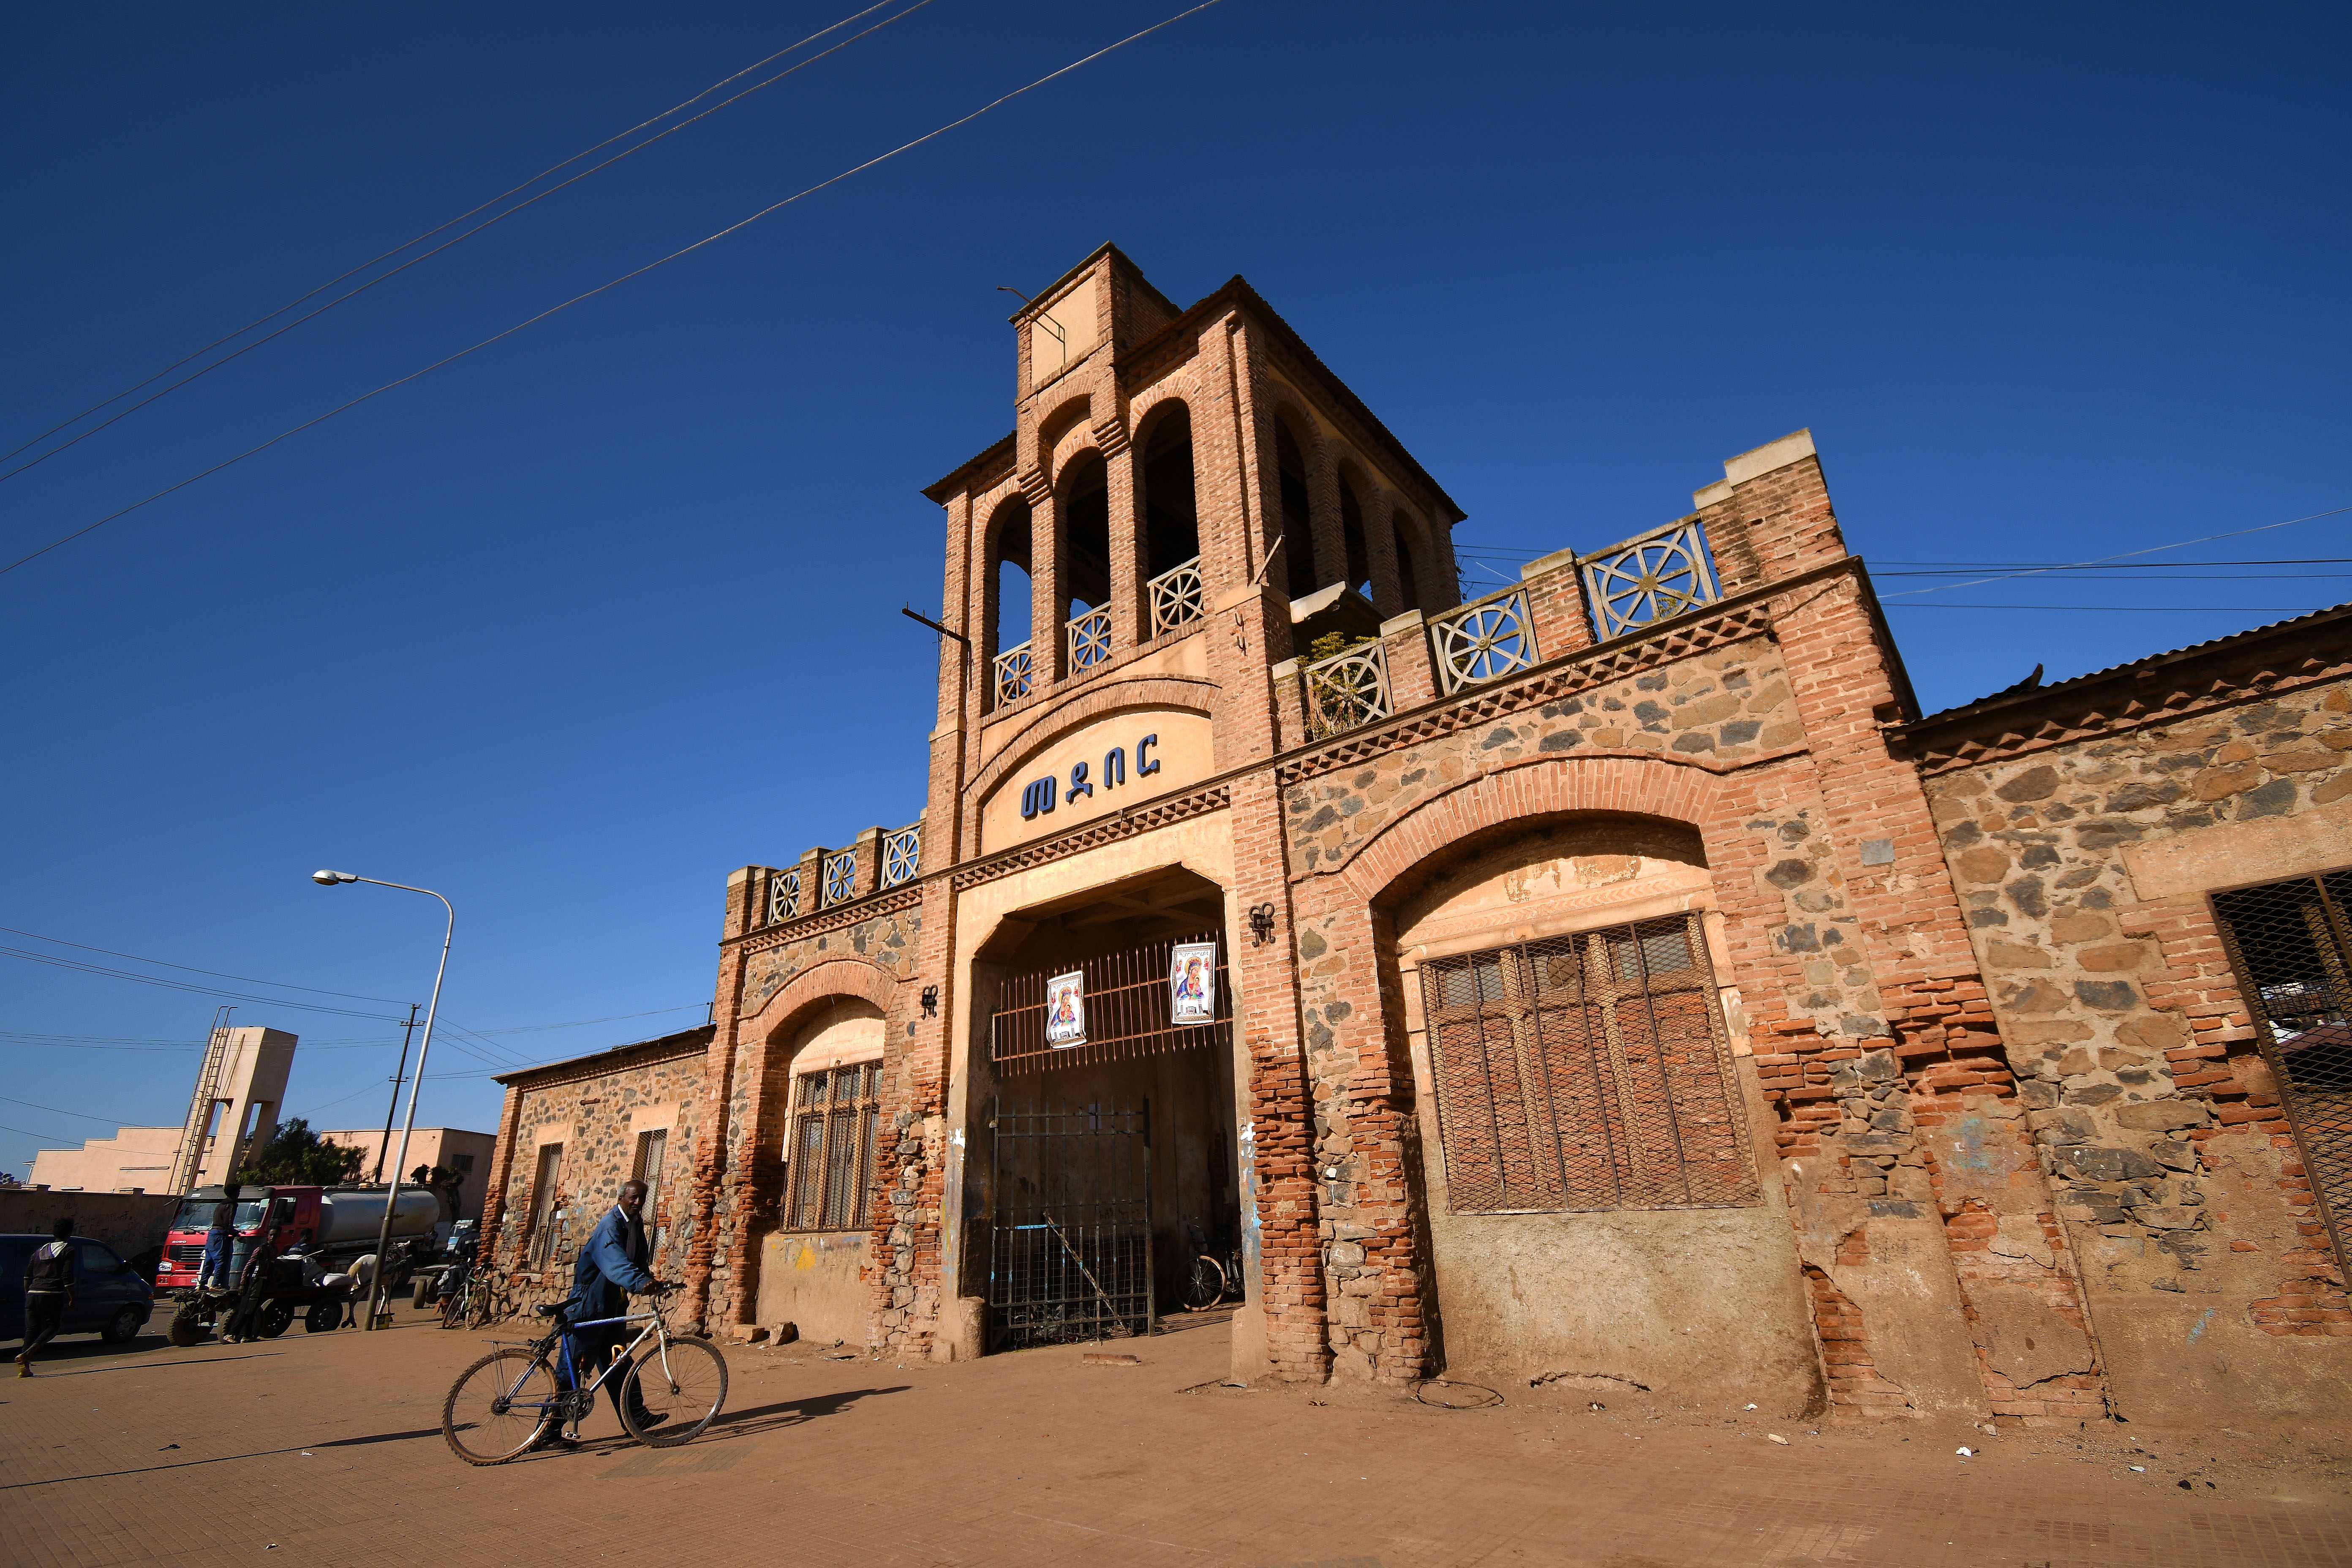 ANJCI ALL OVER | Visiting Eritrea: An African country on the brink of change?